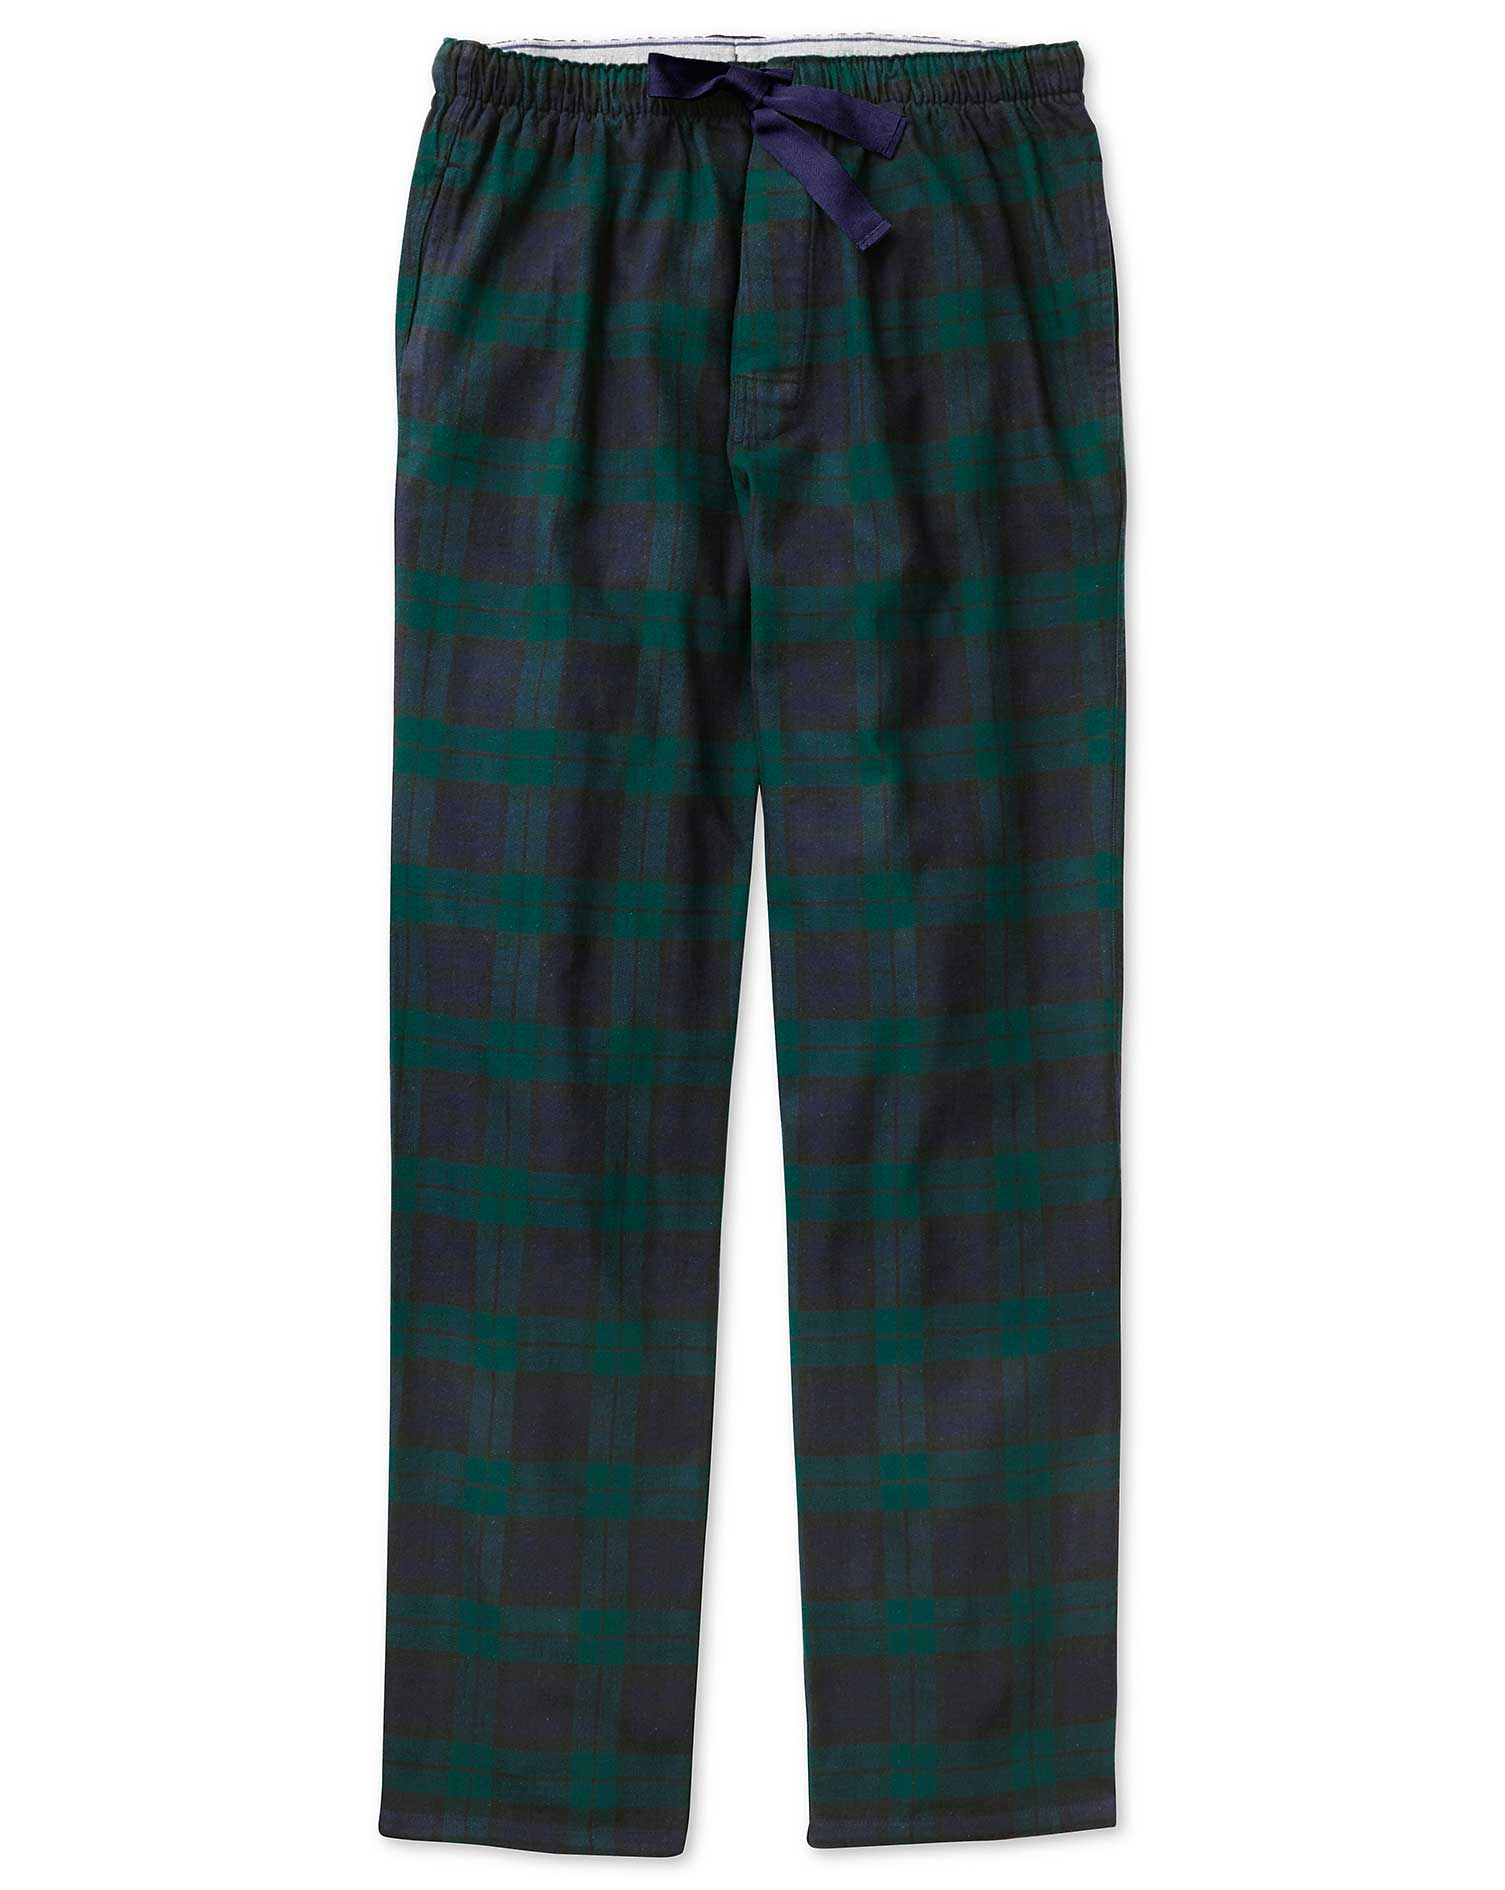 Navy and Green Check Brushed Cotton Pyjama Trousers Size Large by Charles Tyrwhitt